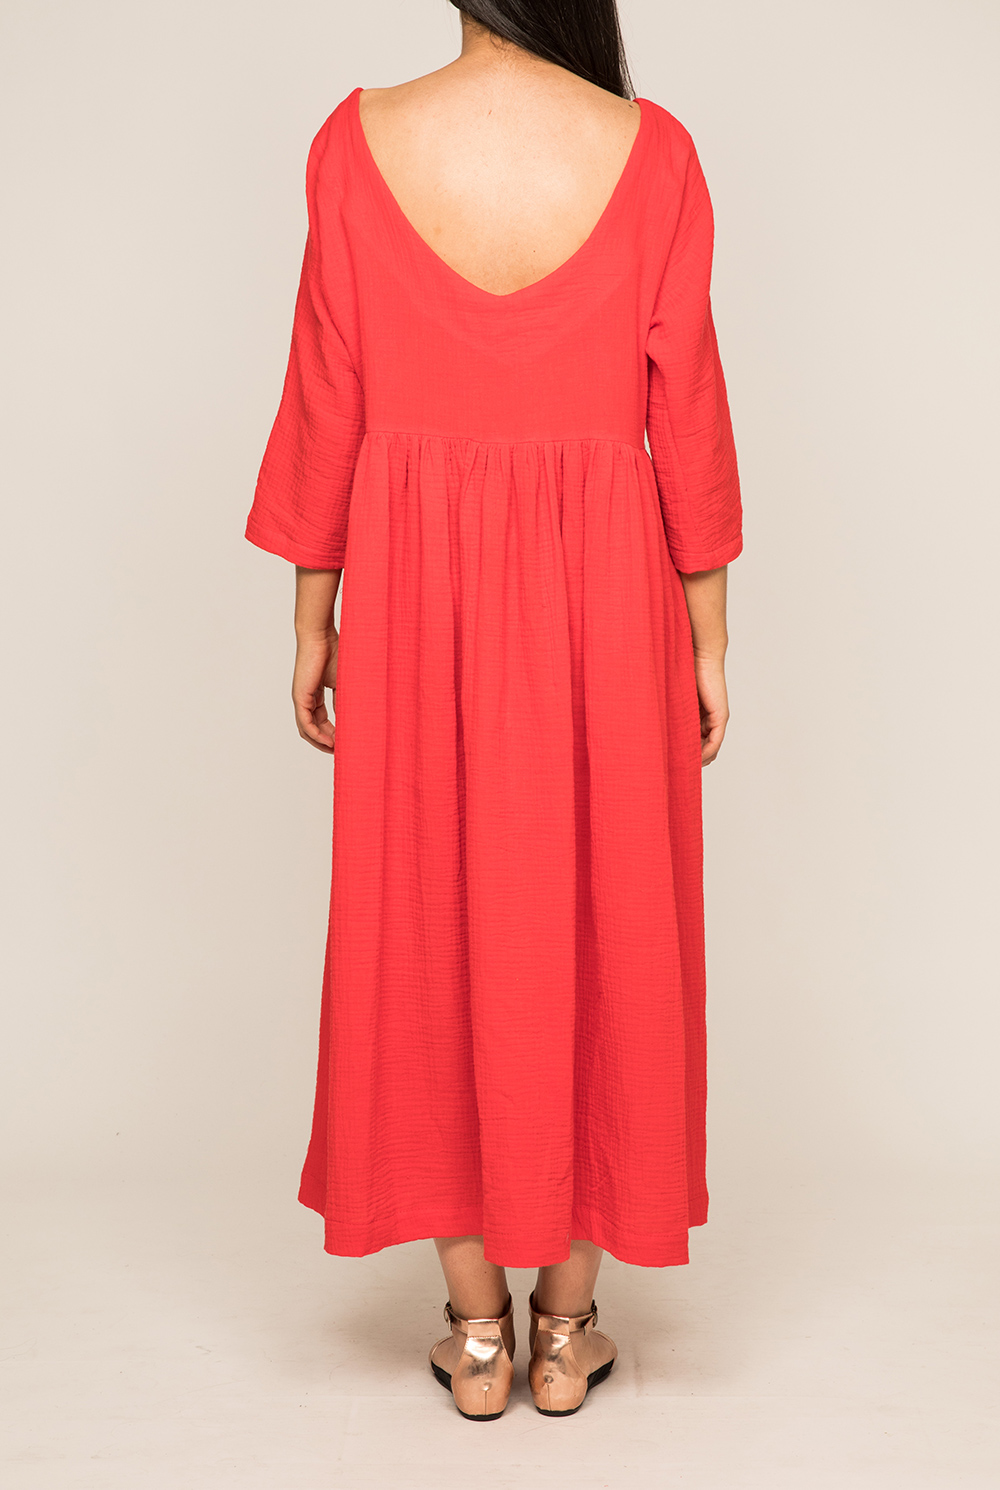 Robe Tanger rouge